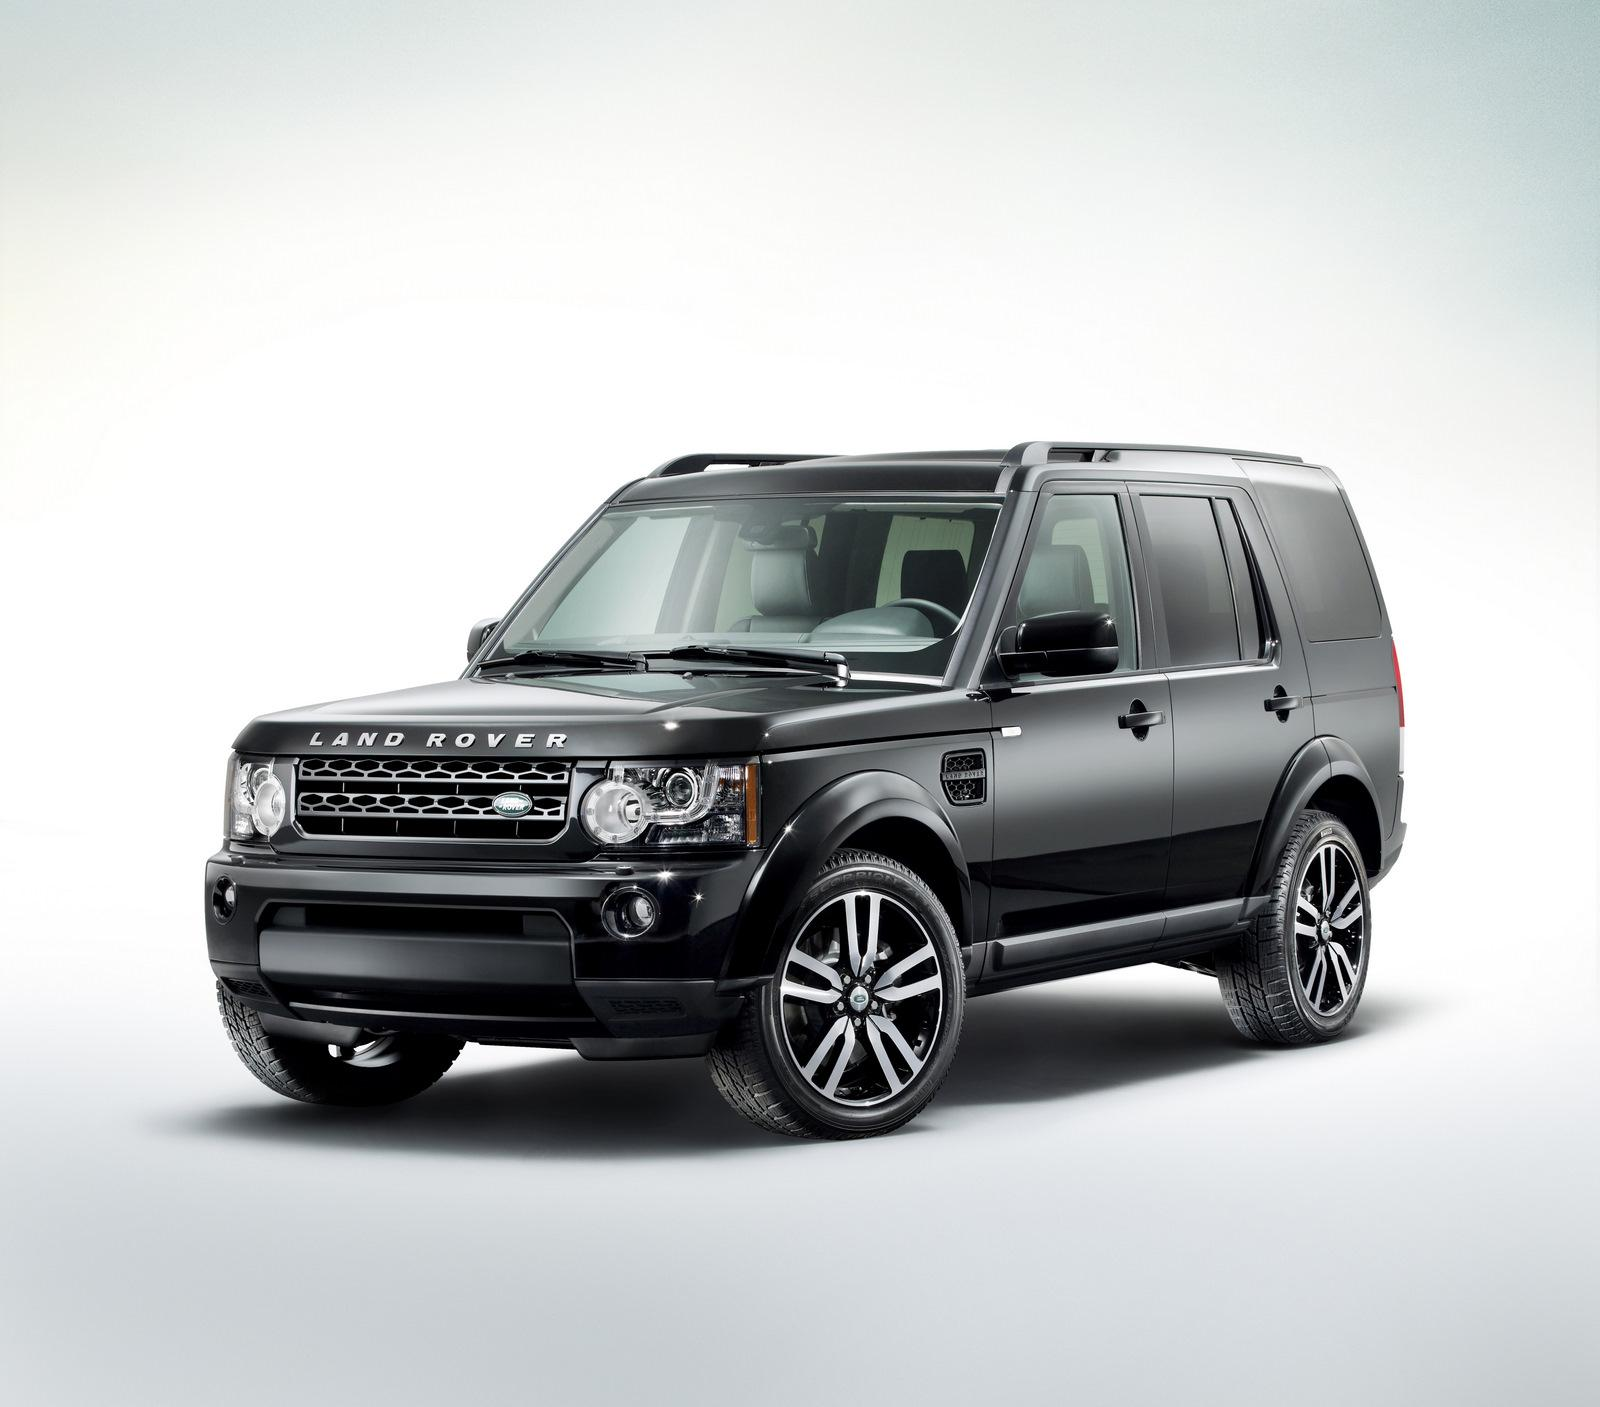 https://www.automobilesreview.com/gallery/2011-land-rover-discovery-4-landmark-special-edition/2011-land-rover-discovery-4-landmark-special-edition-06.jpg